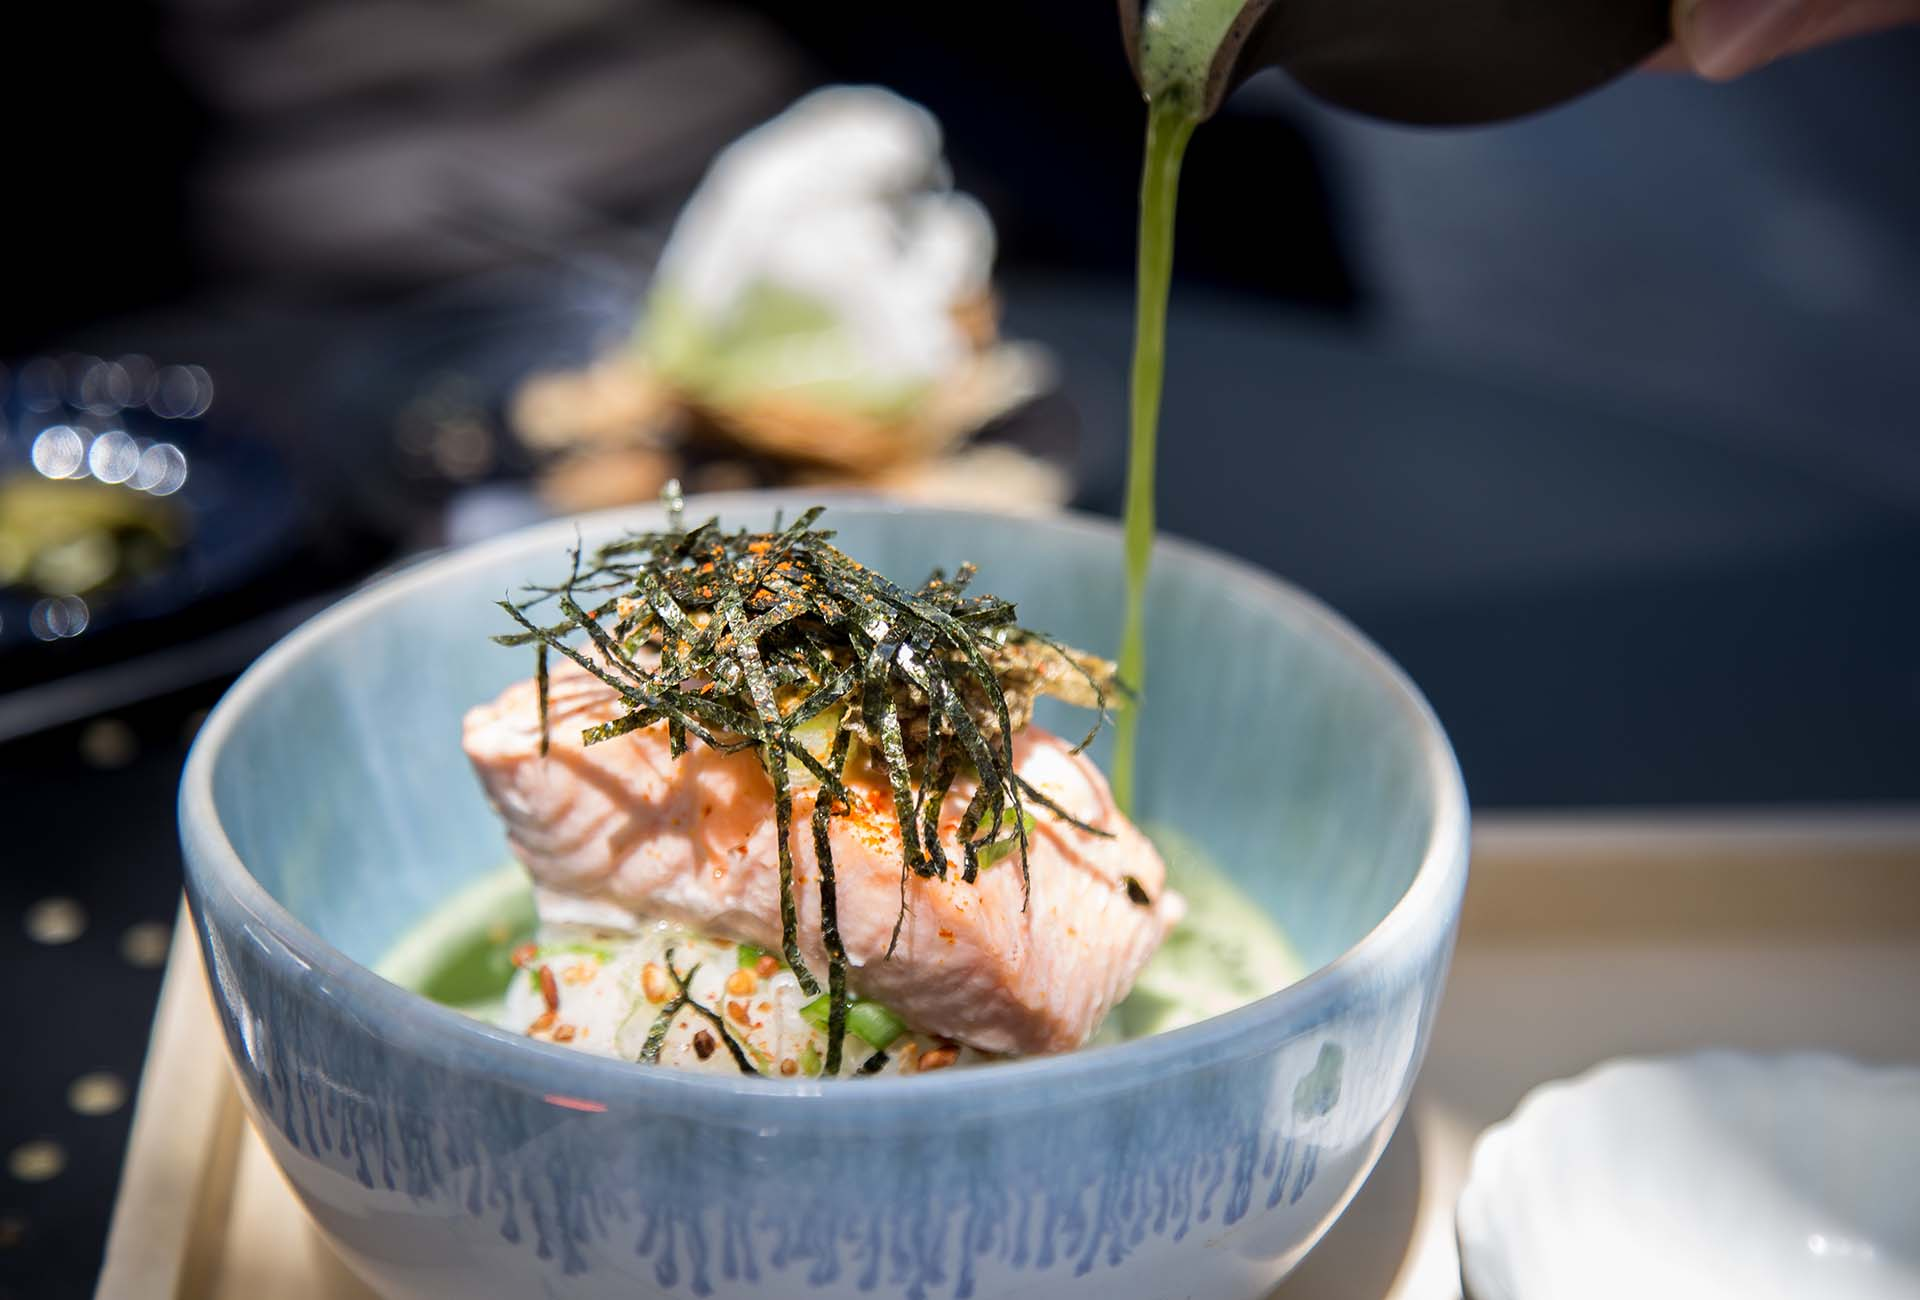 The Matchazuke is essentially a rice bowl with salmon and doused in chicken dashi and matcha tea